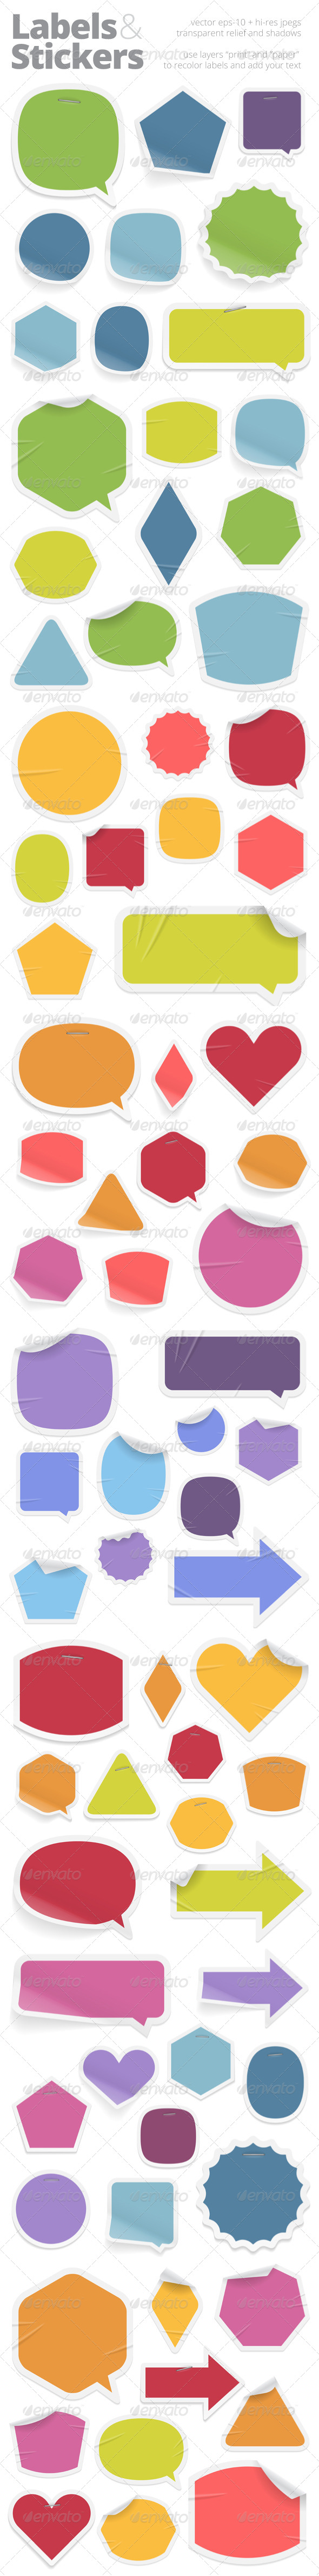 Labels and Stickers Template design, Stickers, Labels